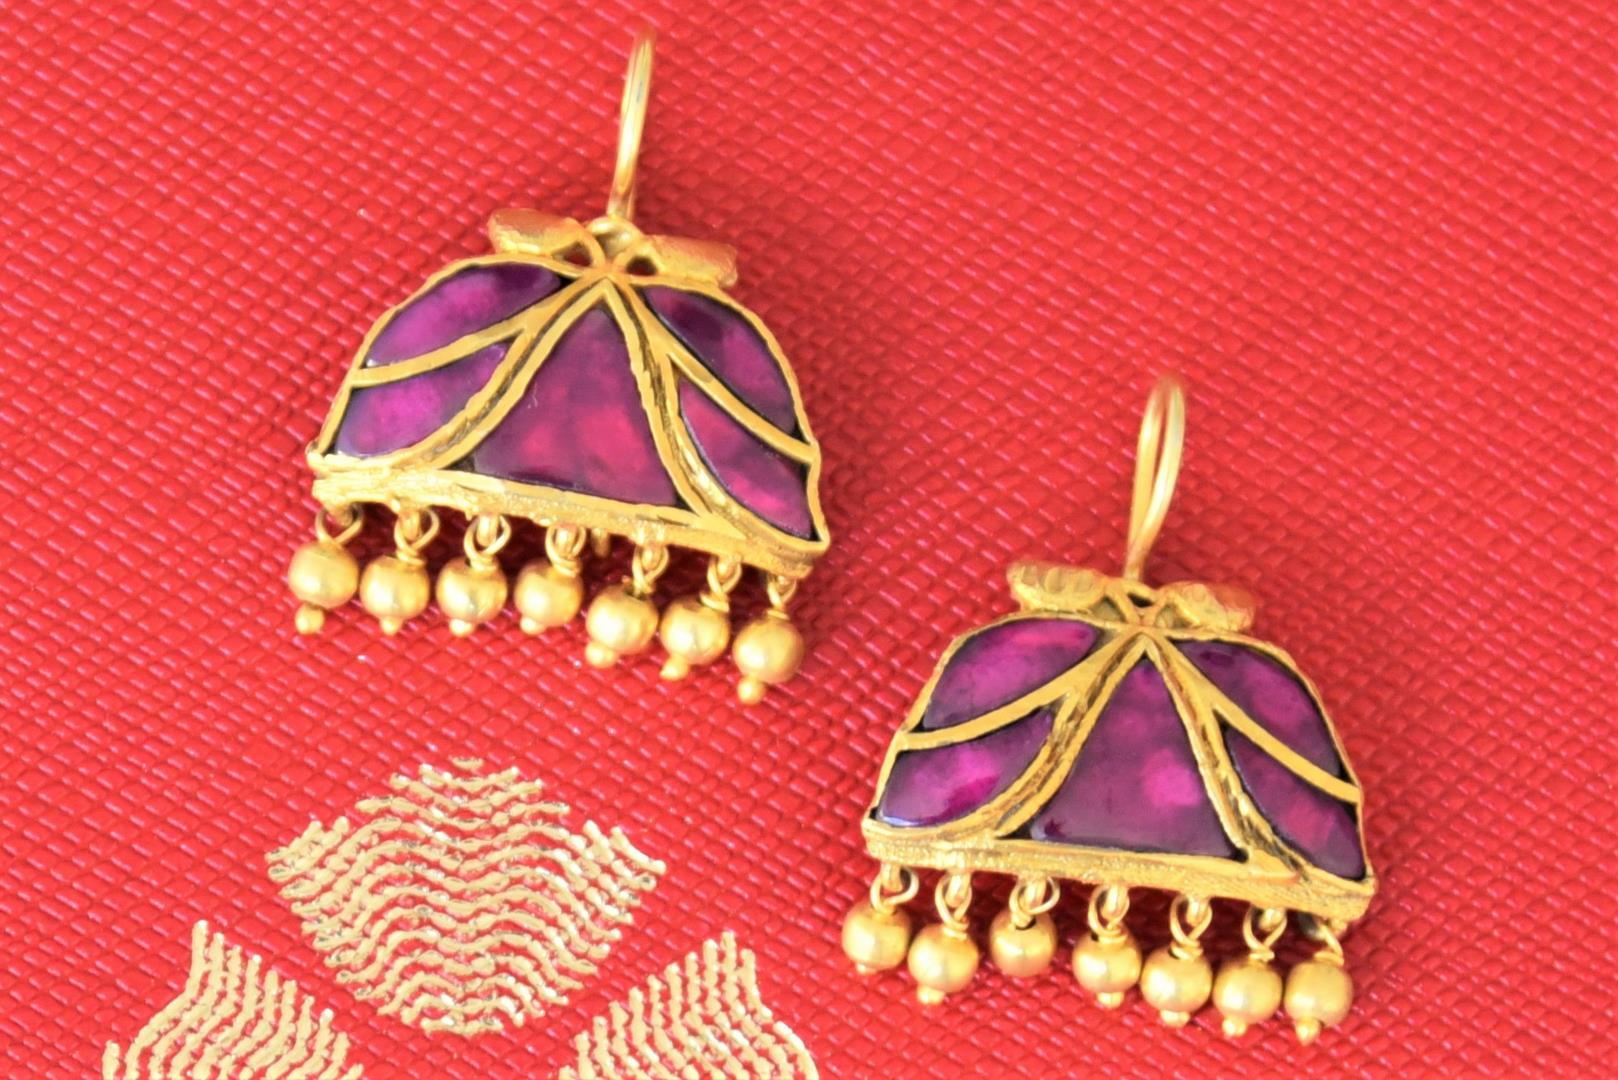 Shop silver gold plated Amethyst earrings online in USA with golden beads. Add spark to your festive style with beautiful Amrapali gold plated jewellery in USA from Pure Elegance Indian fashion store.-flatlay